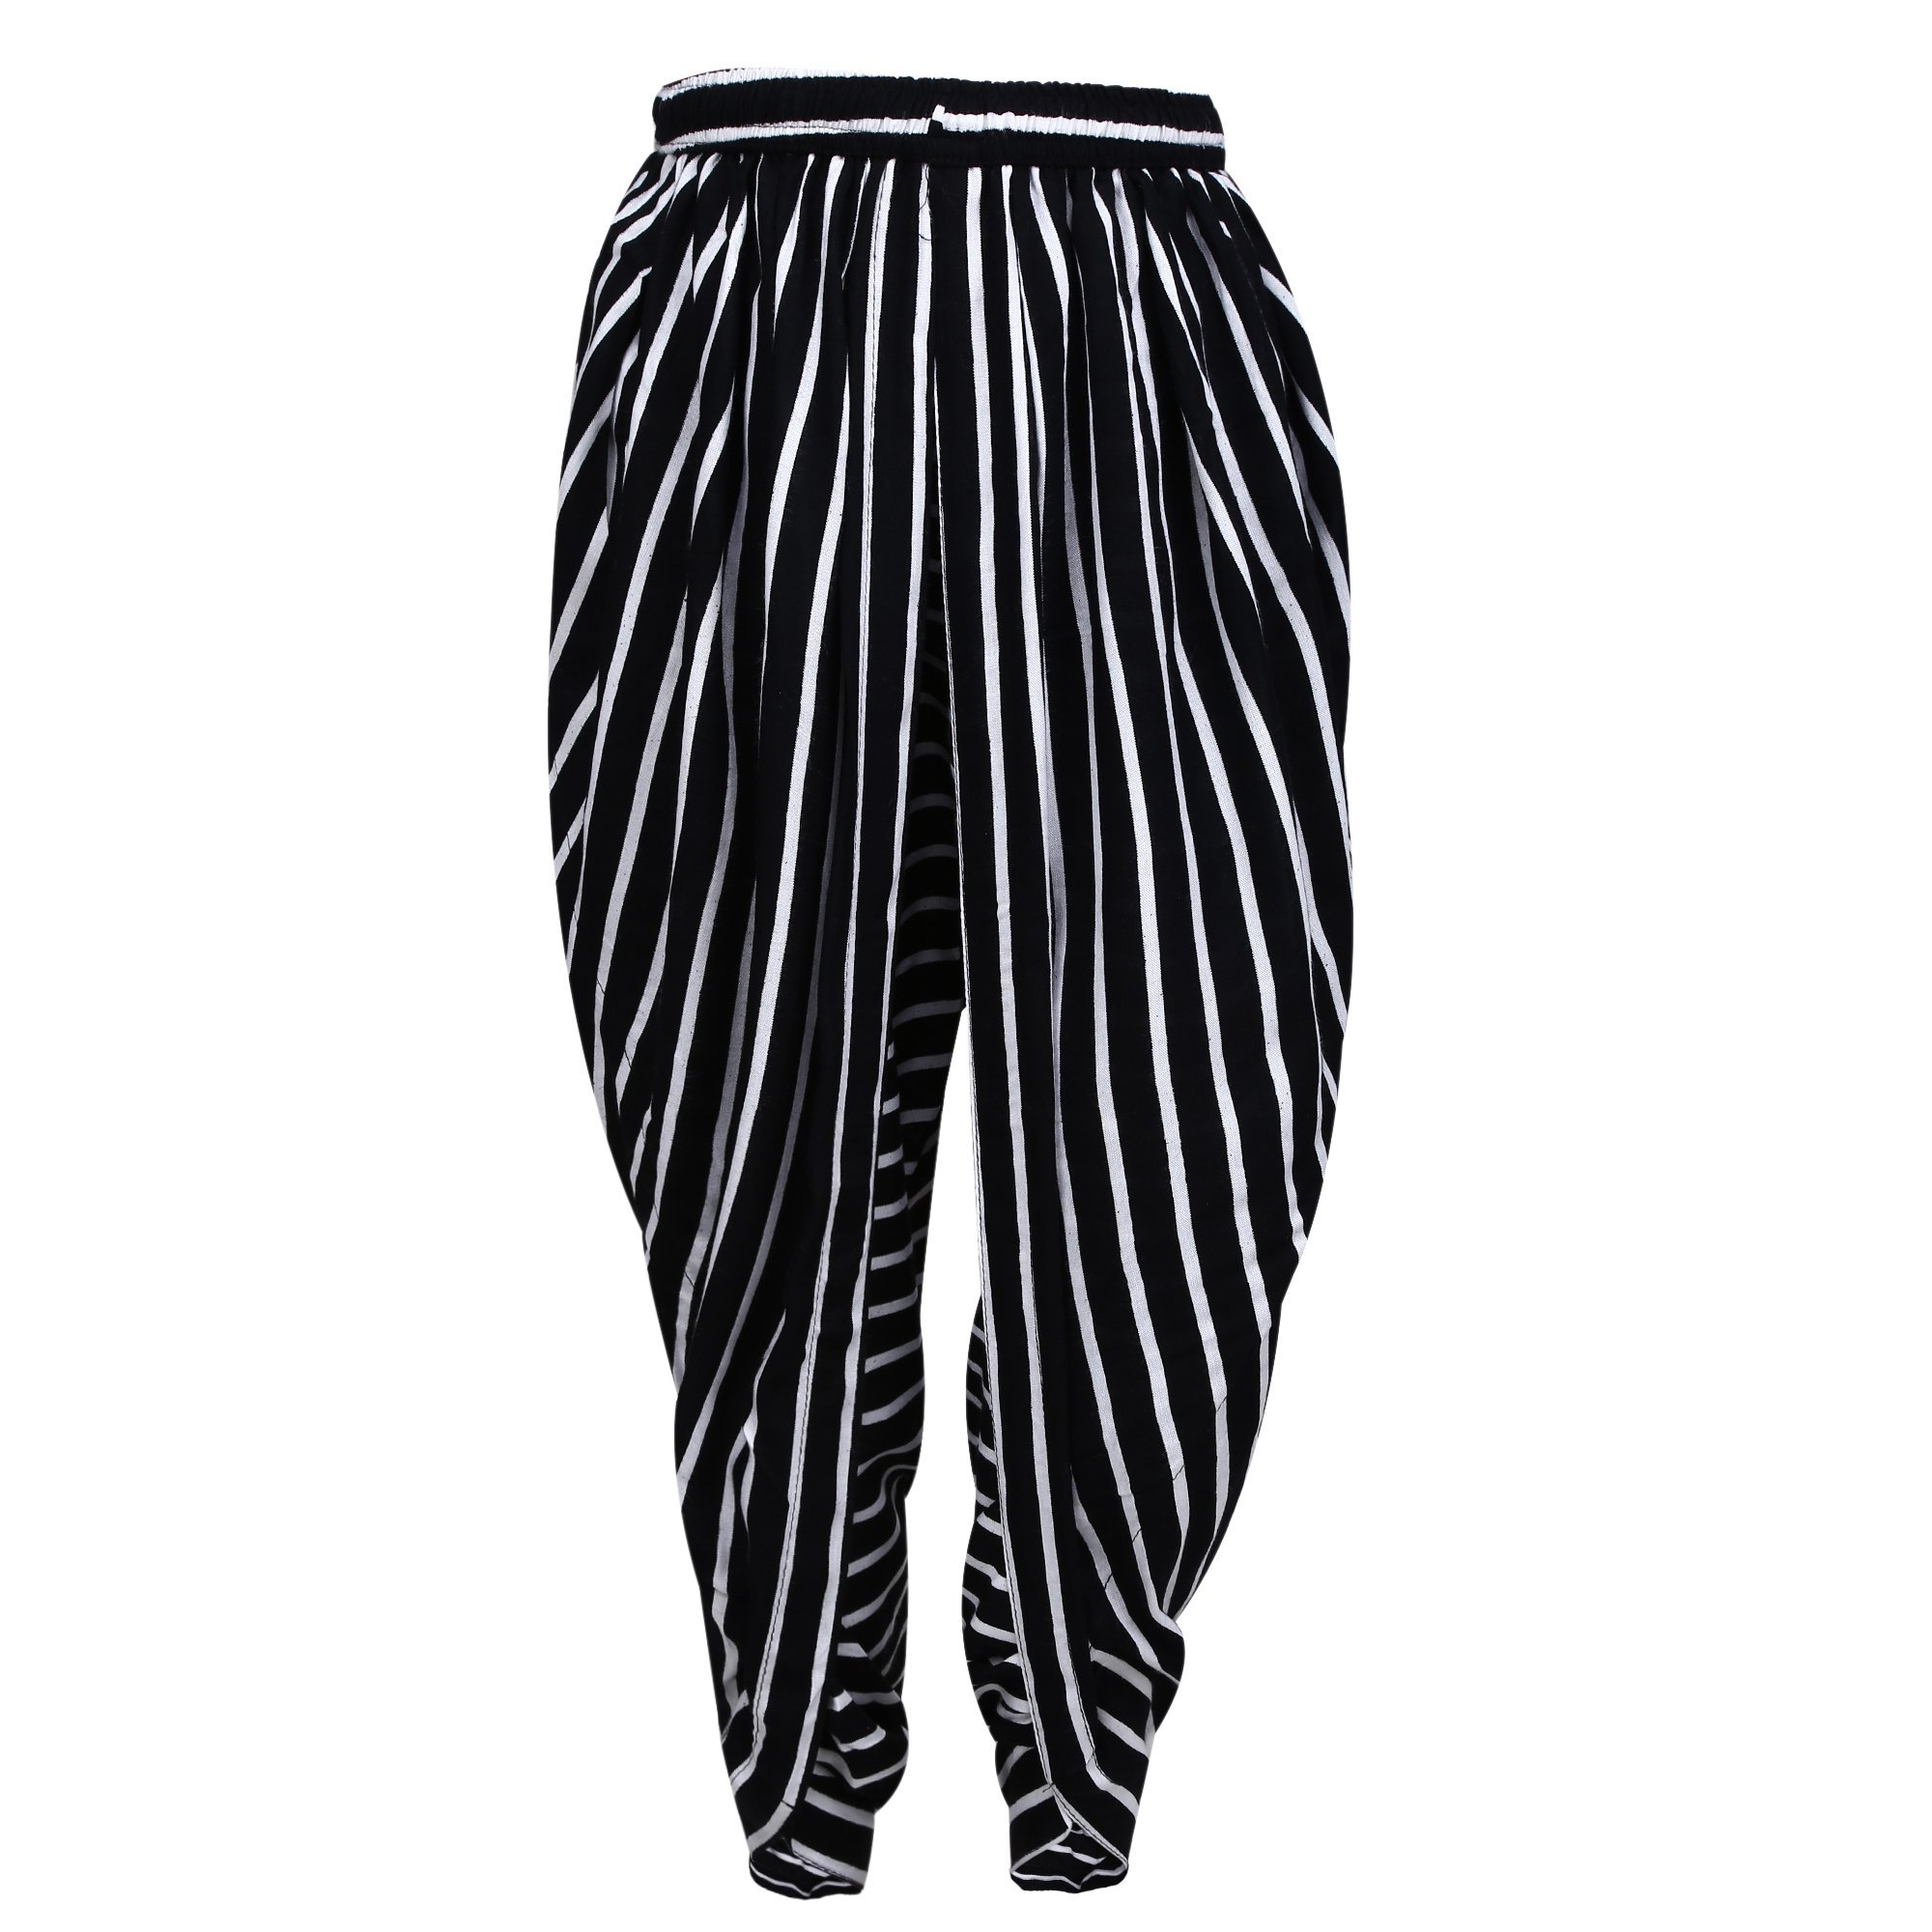 Black and White Striped Rayon Dhoti Pant, Patiala Dhoti Salwar, Dhoti Trousers for Chidren